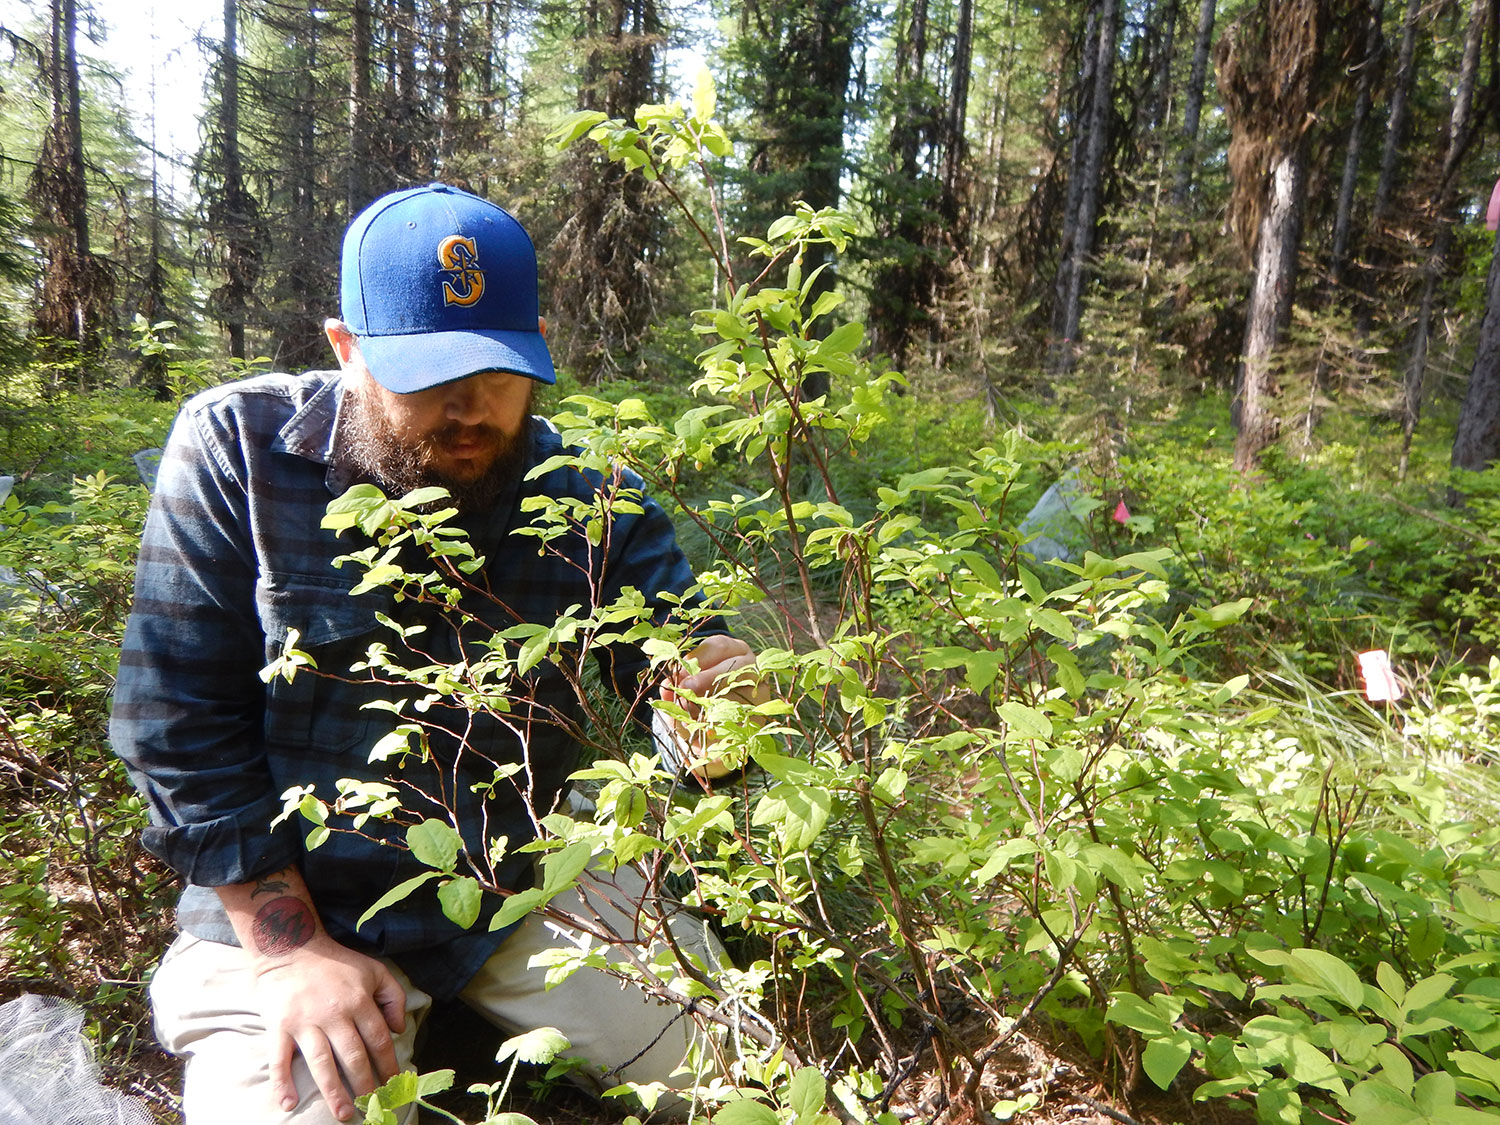 Earthwatch volunteer Kyle Stoddard came to the expedition from Aberdeen, Washington. Building on his experience as a forest technician, he proved willing and able to learn new skills with plants and bumblebees in the Northern Rockies. Photo: Maria Mantas